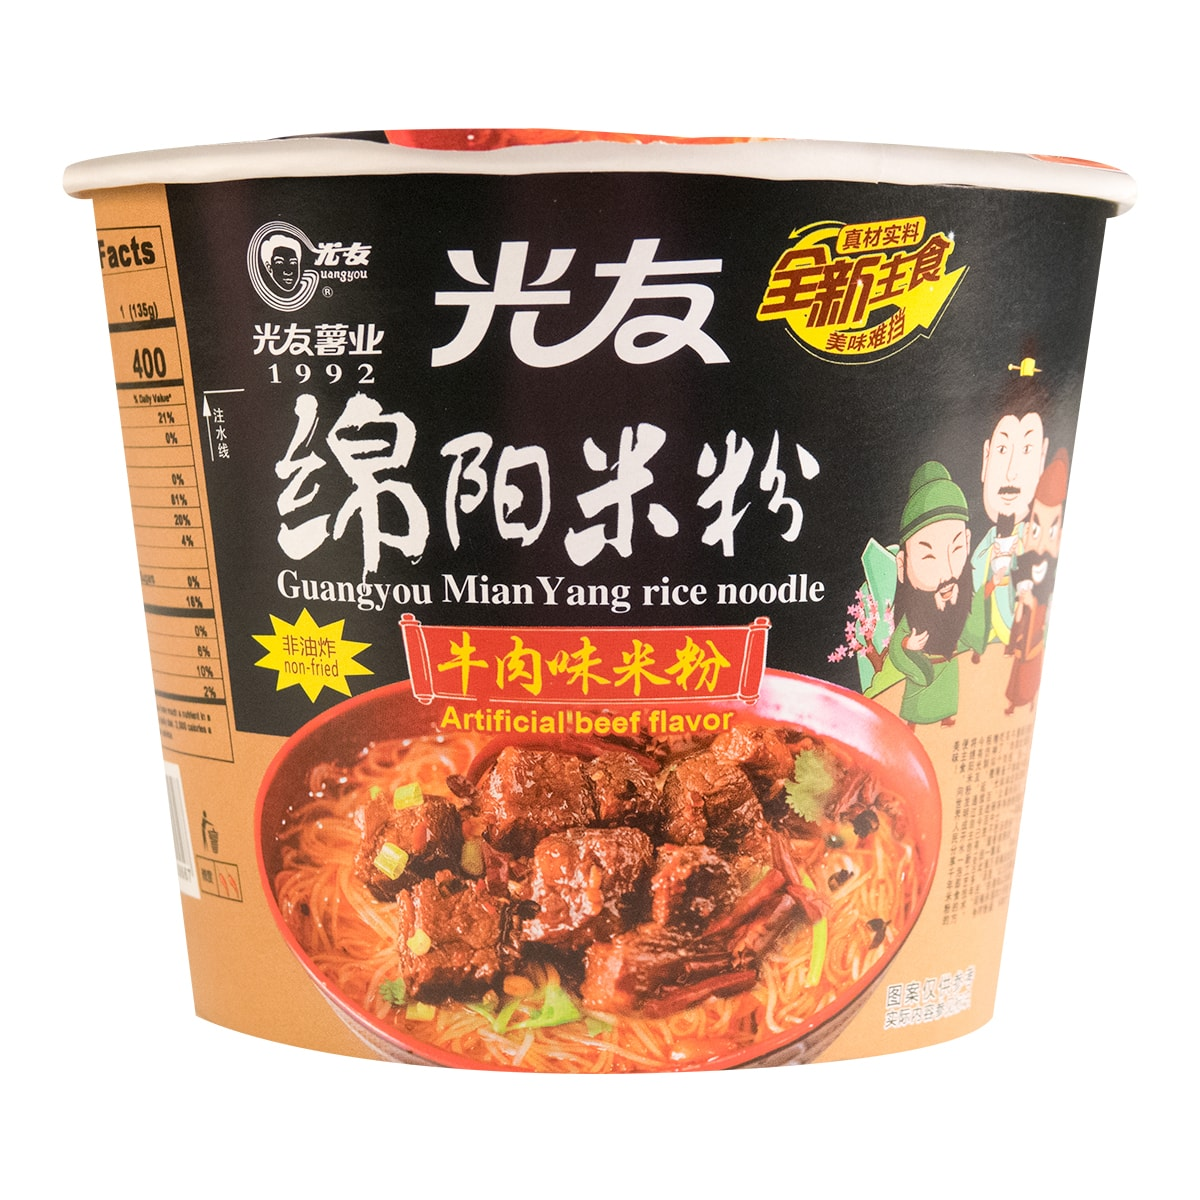 GUANGYOU Mian Yang Rice Noodle Non-Fried Beef Flavor 135g